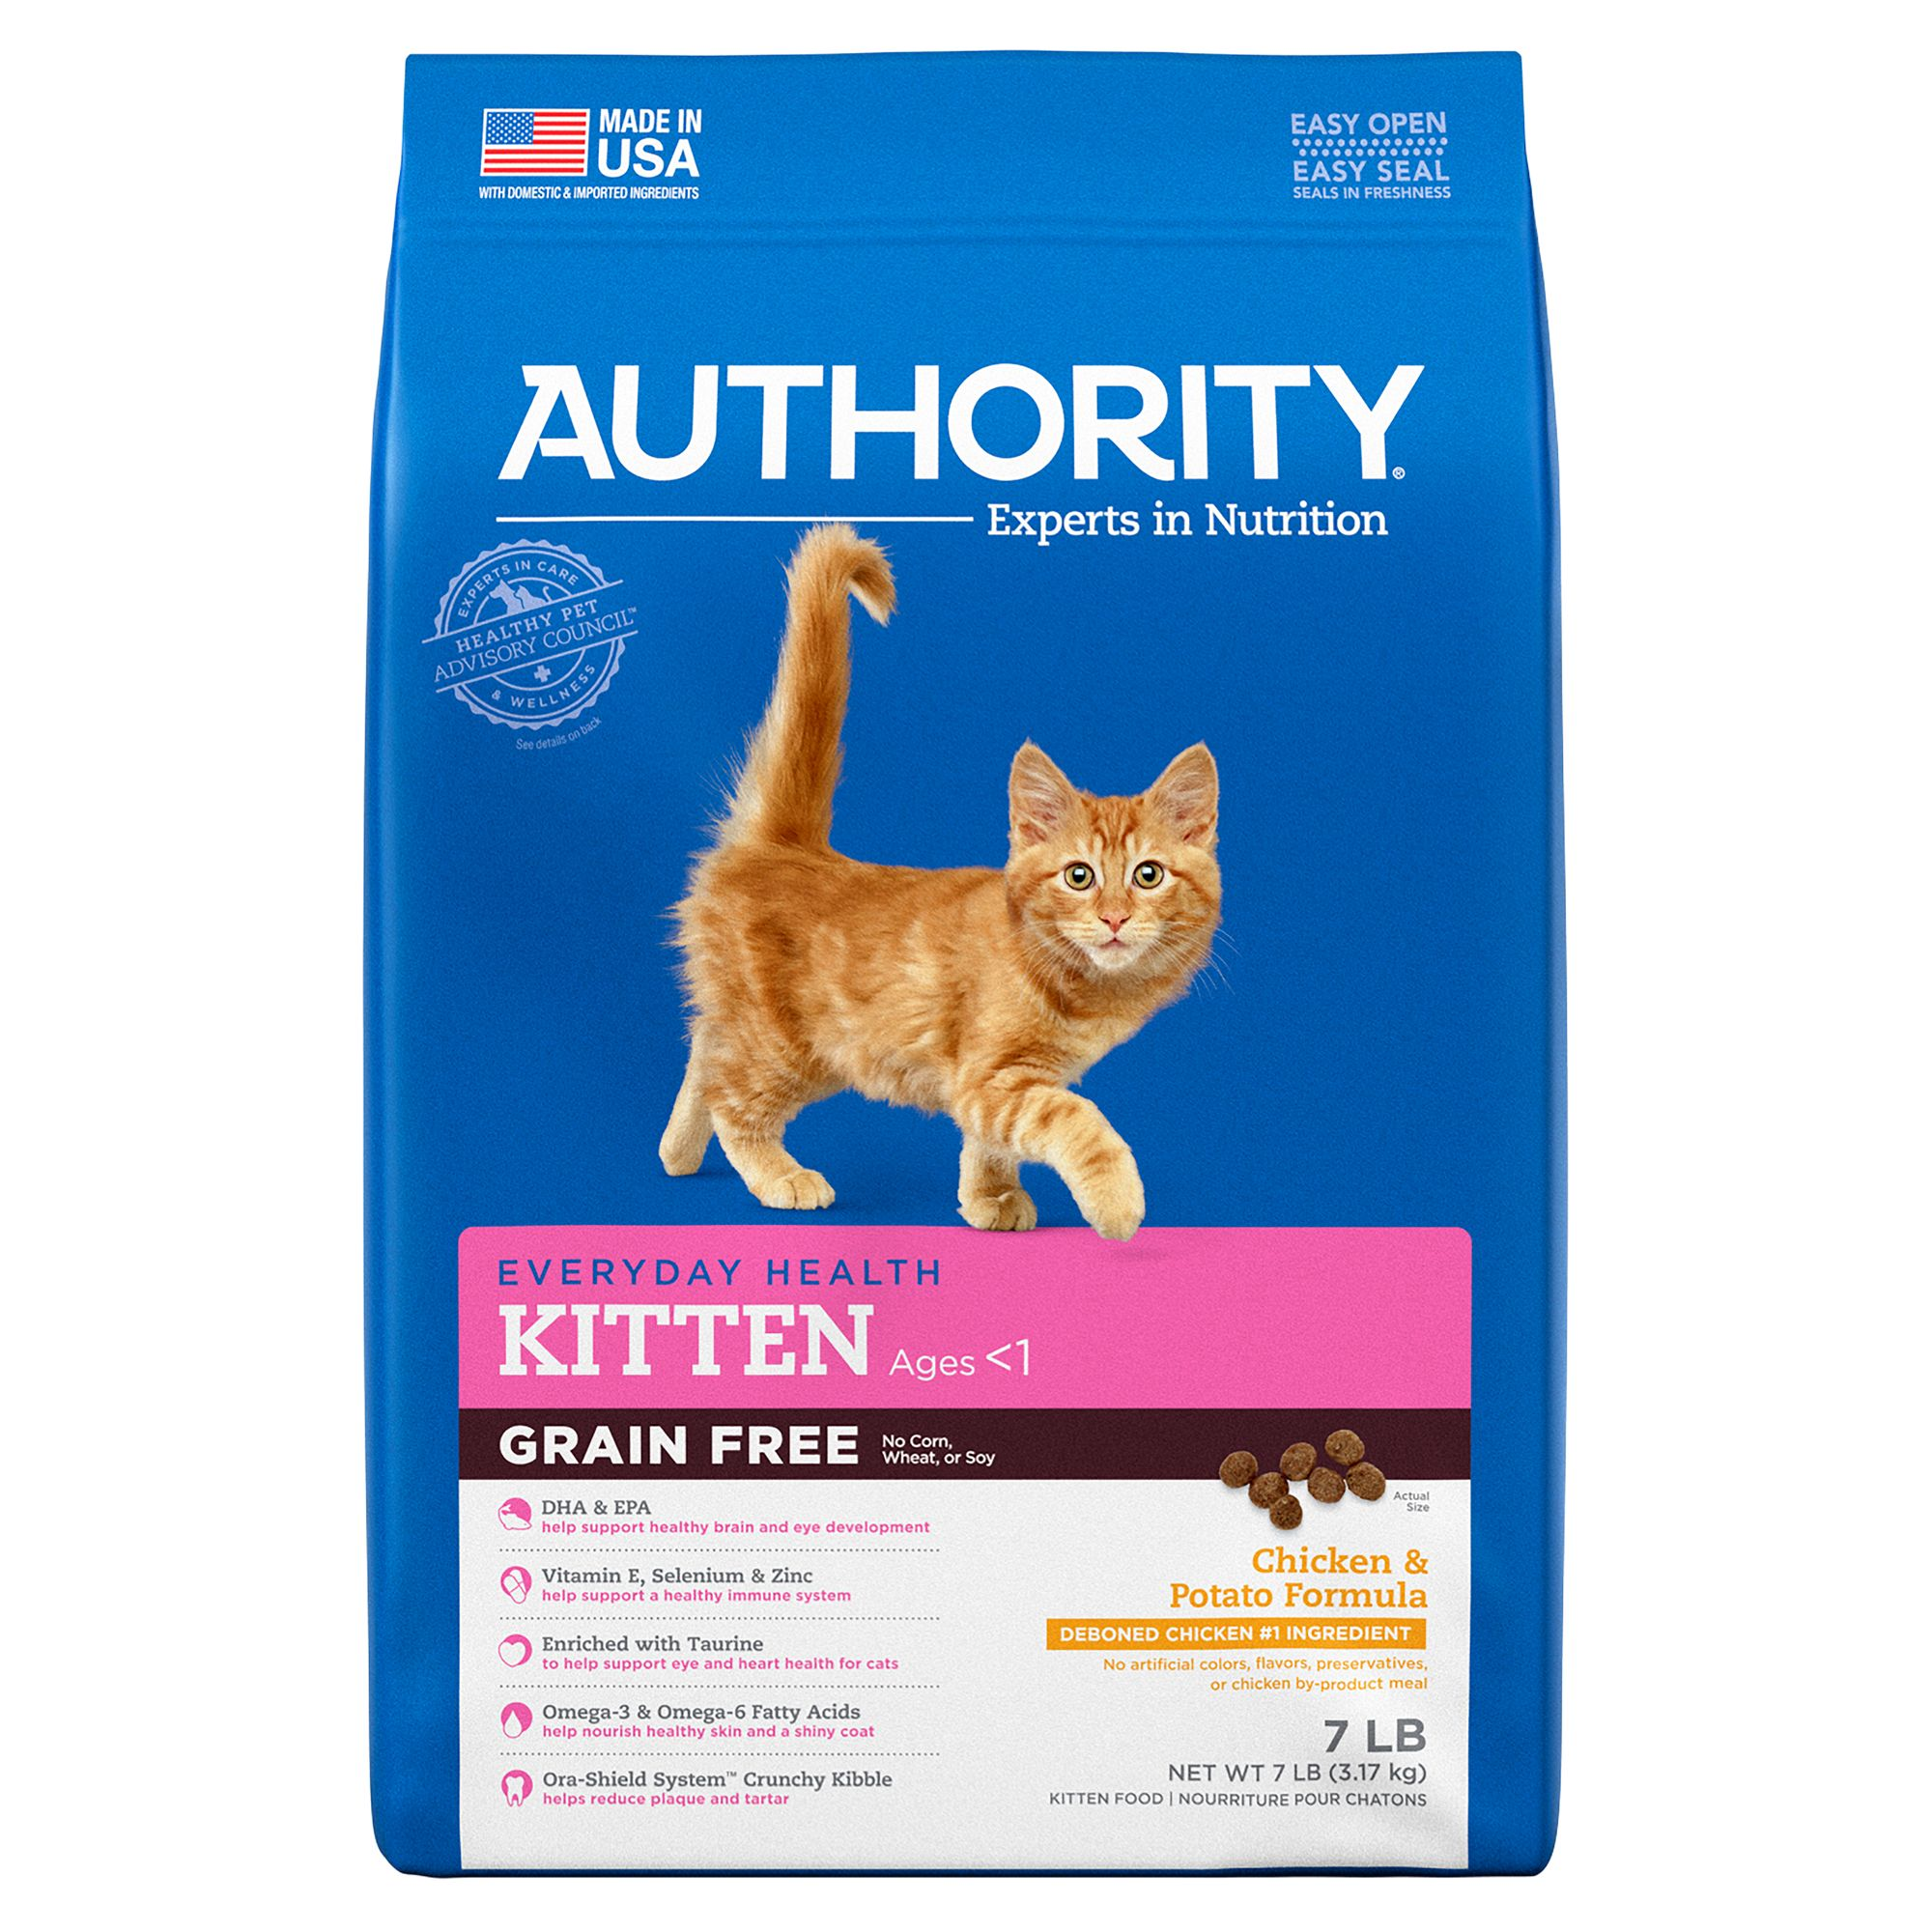 Authority Grain Free Kitten - Chicken & Potato